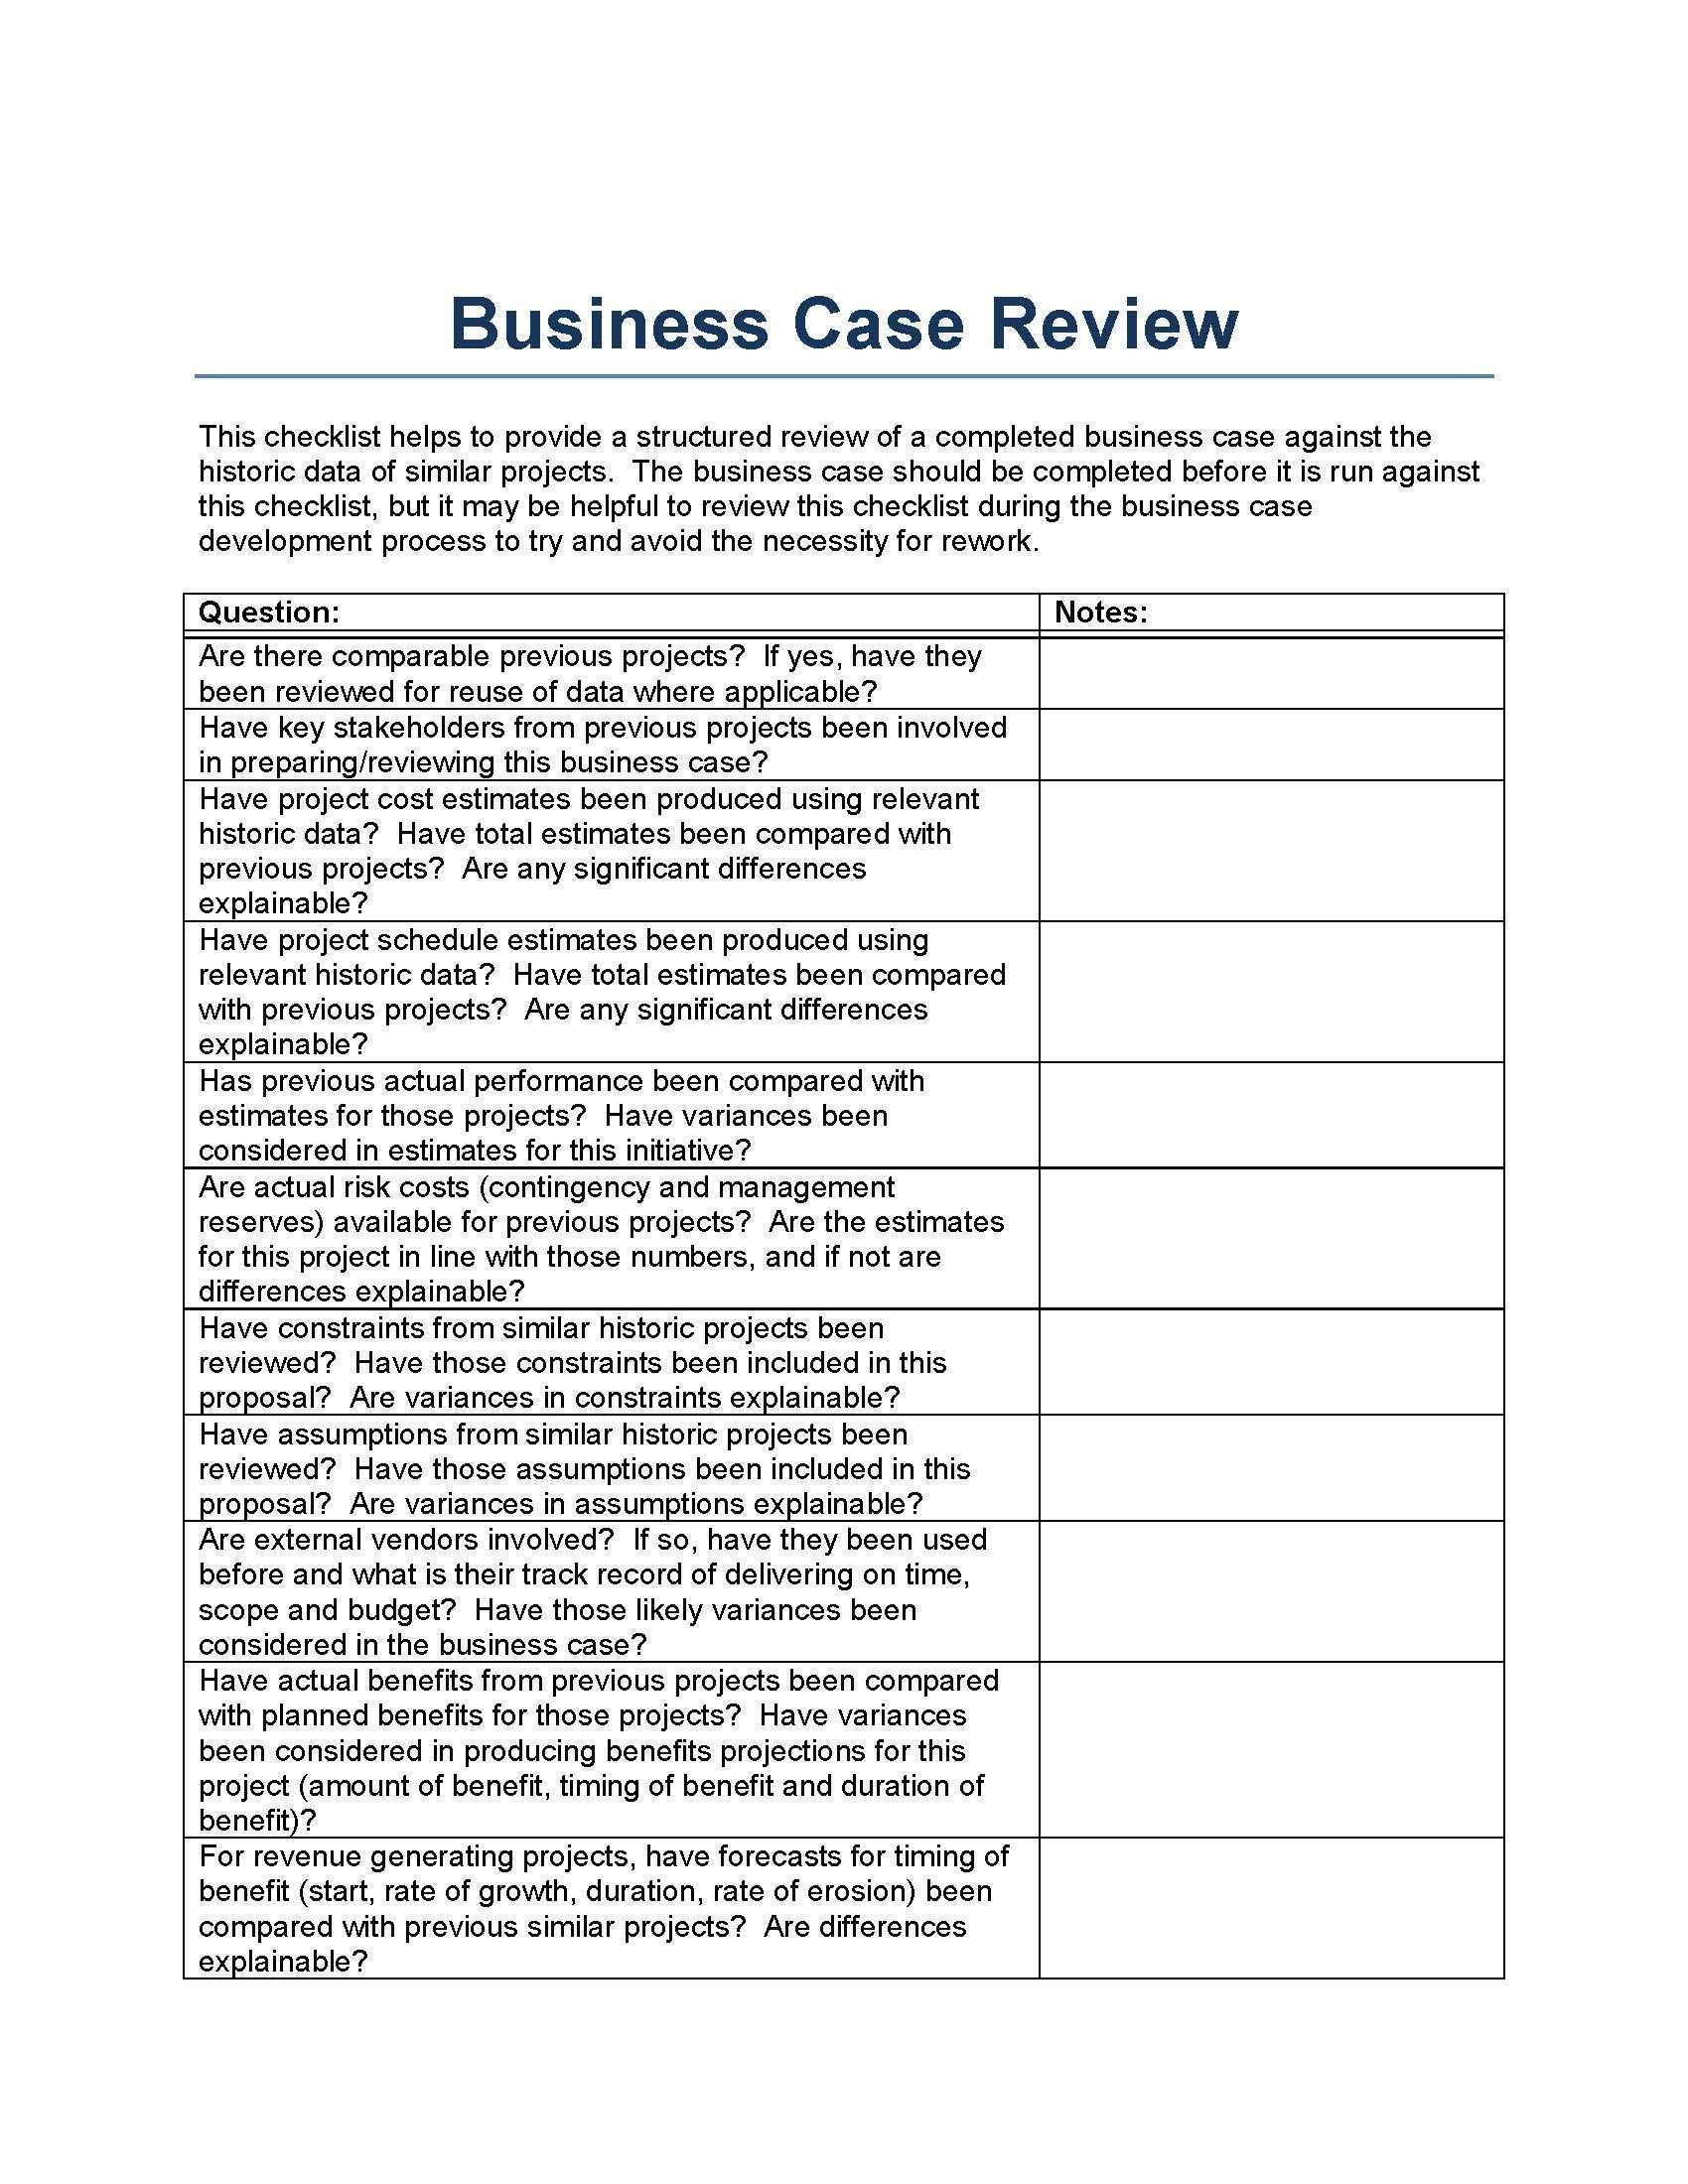 Business Case Review Template From A Perspective Of Historically Similar Projects Business Case Template Business Plan Template Startup Business Plan Template